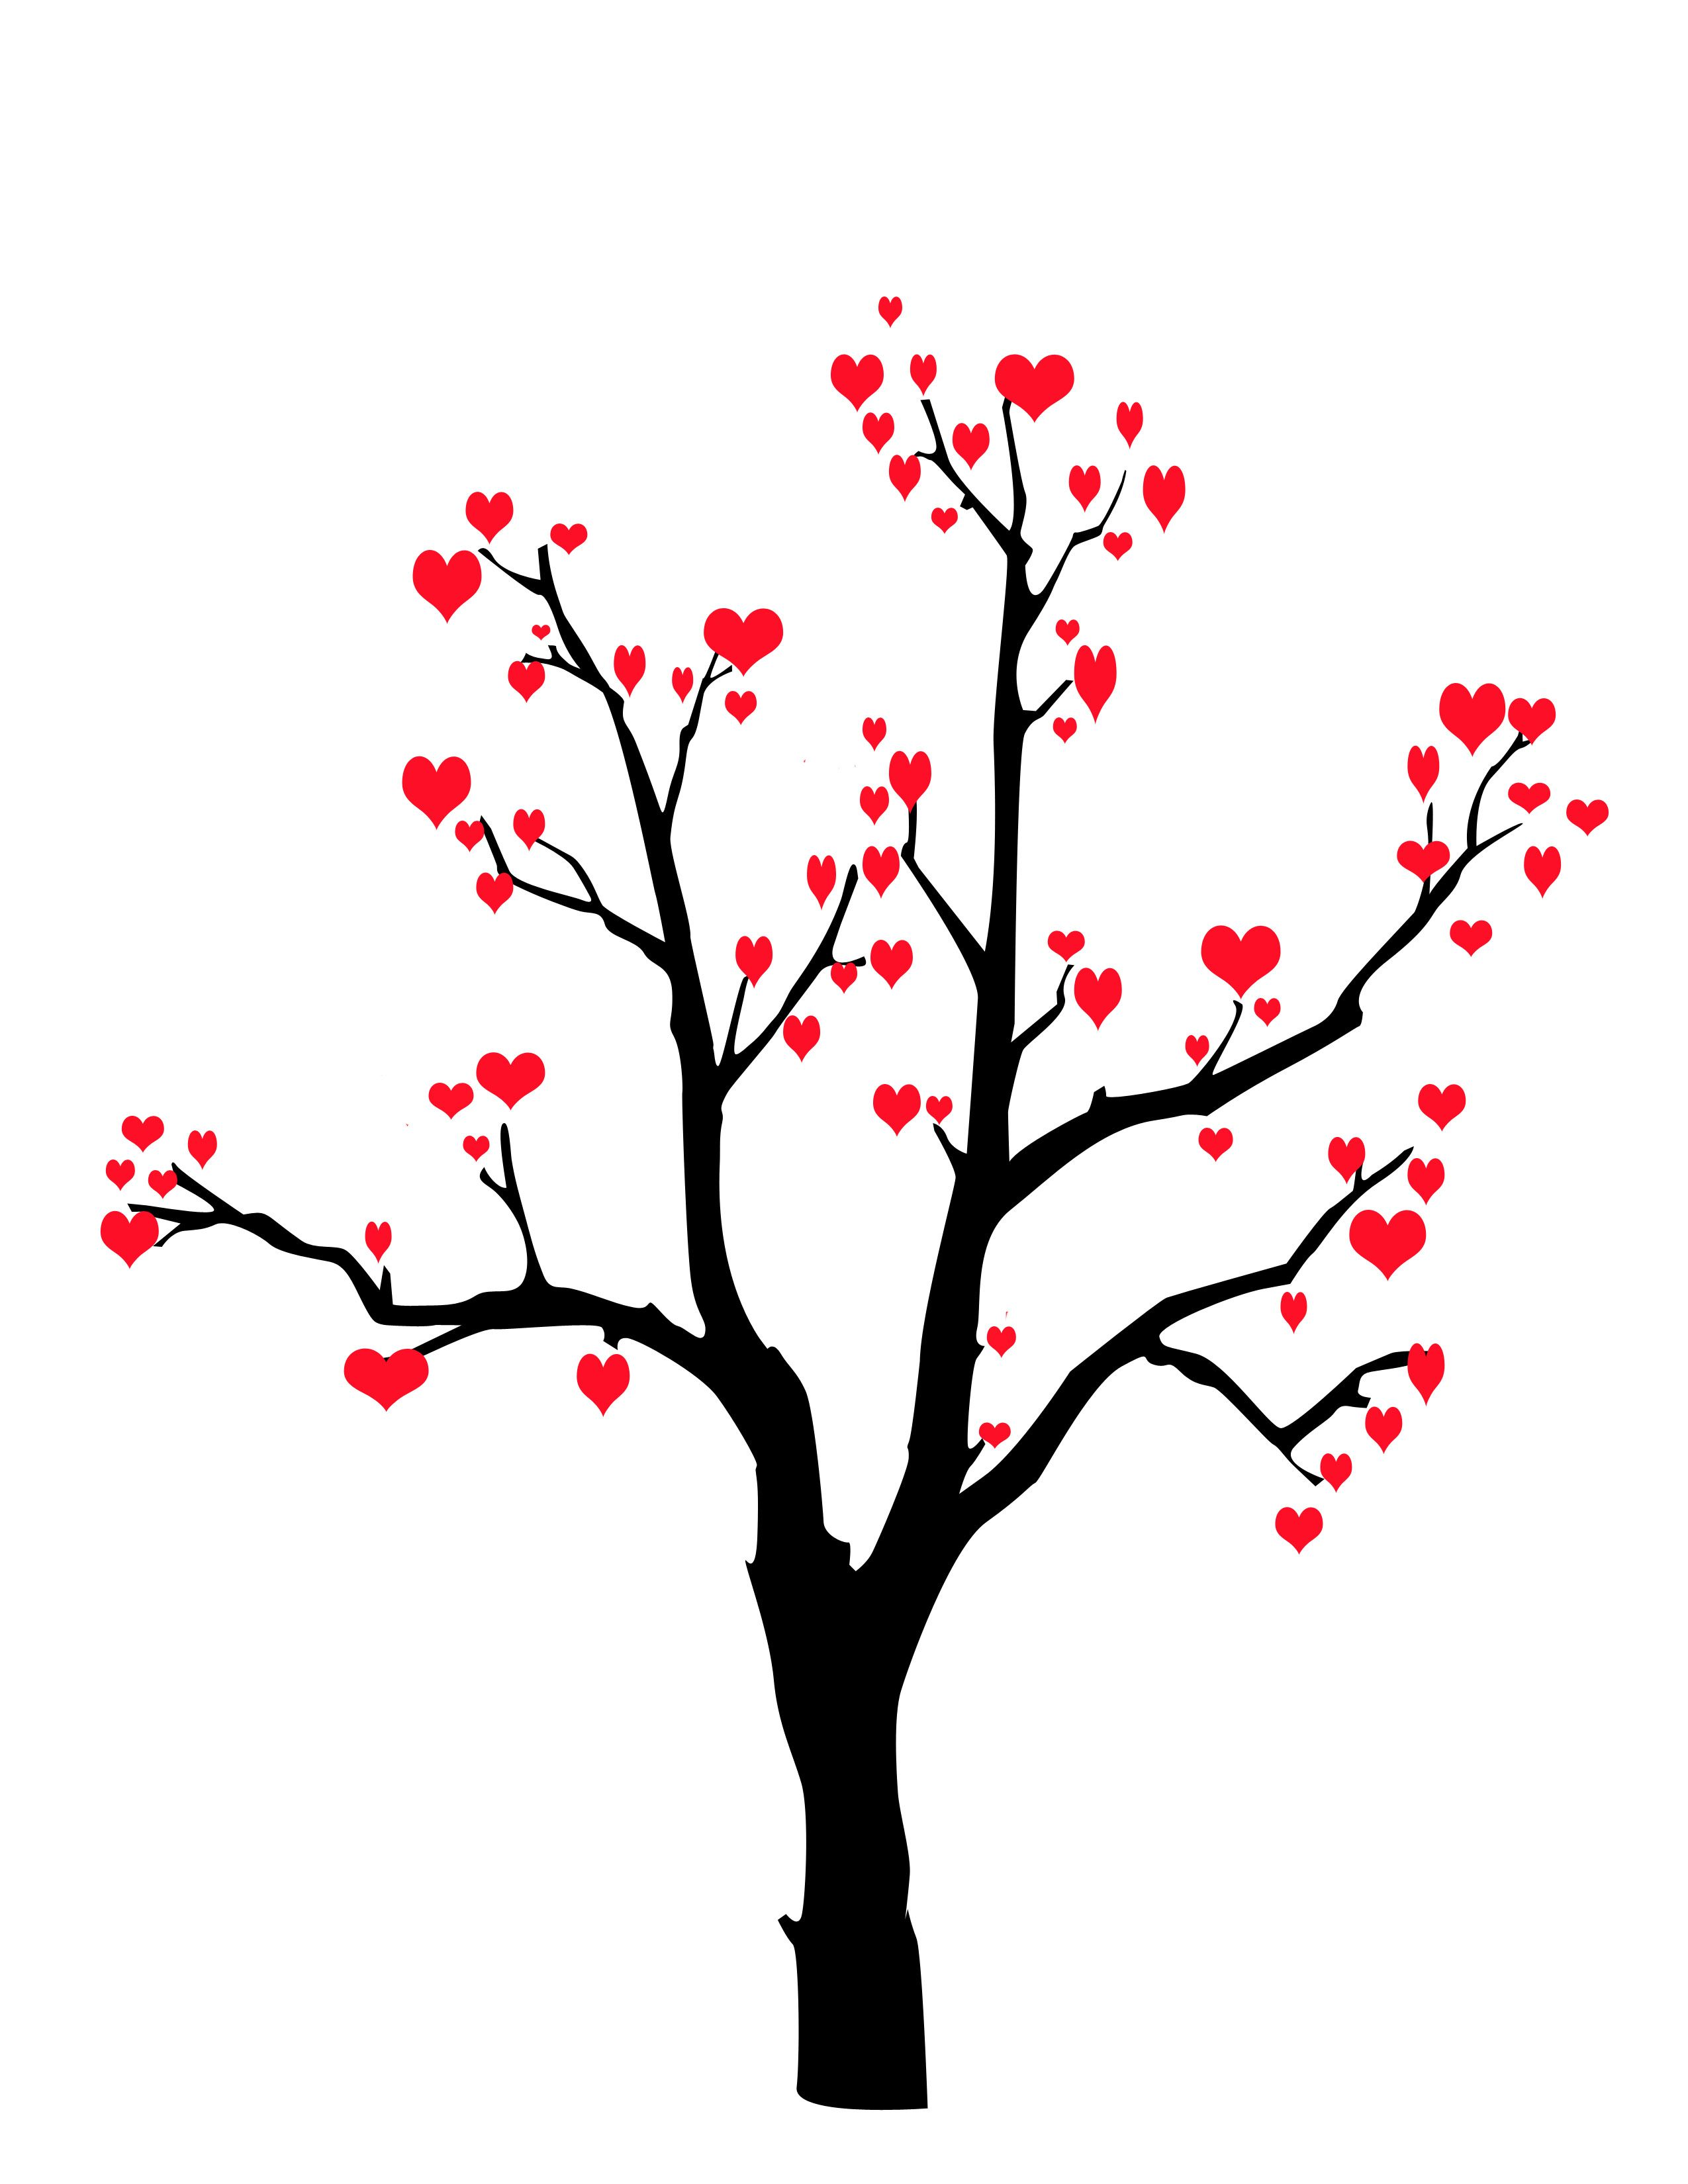 Valentines Card Idea Draw A Tree With Extended Branches Then Make